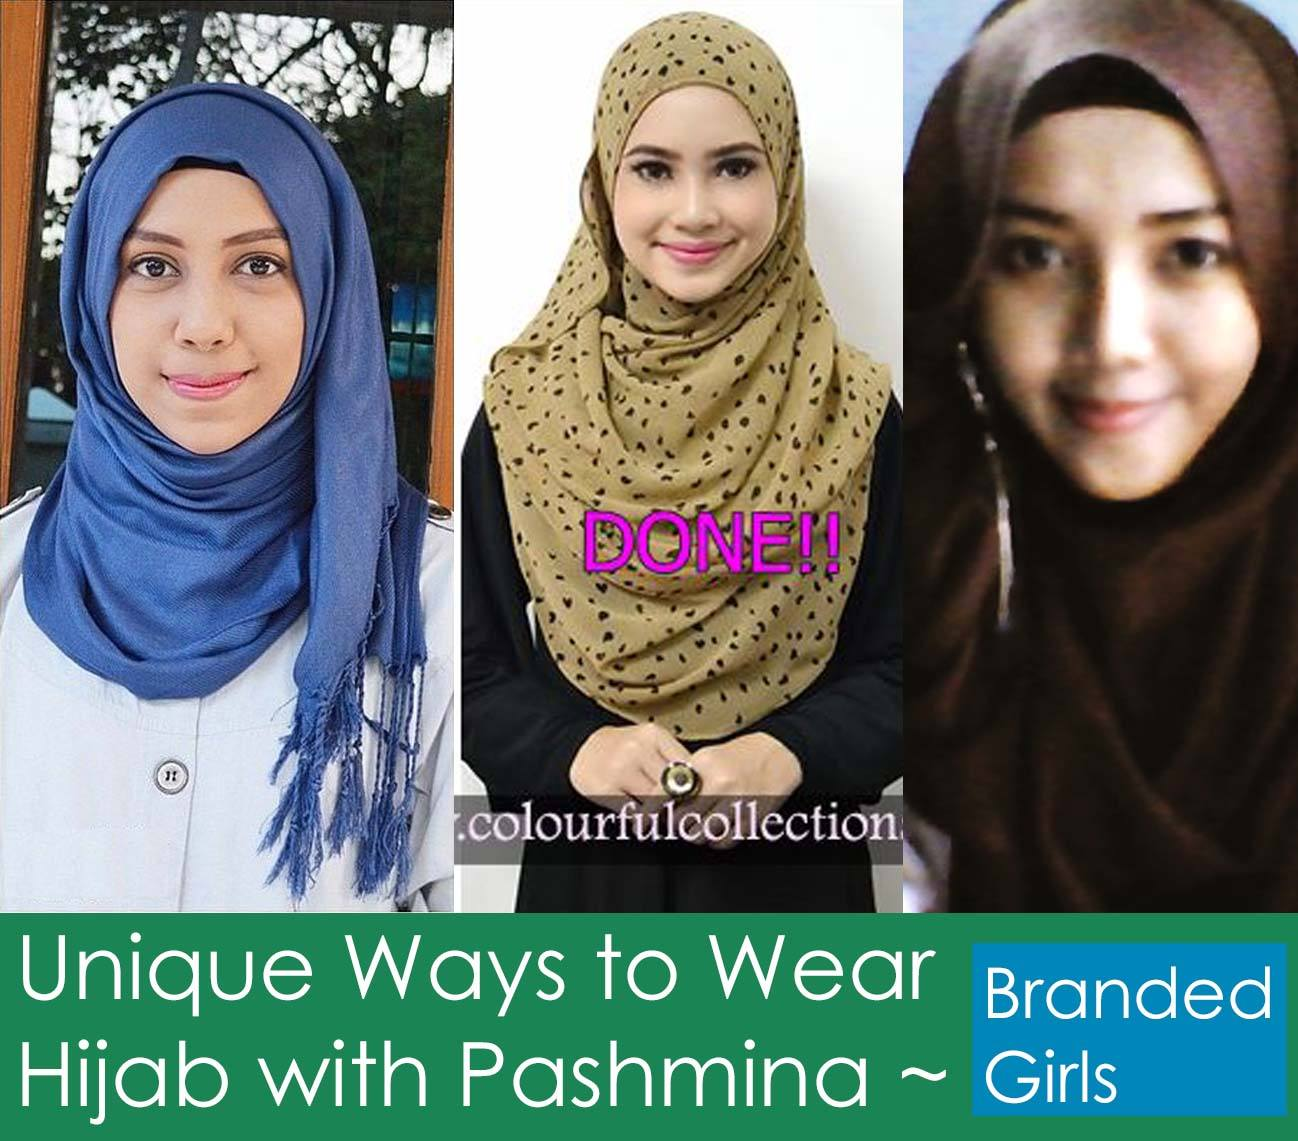 polyvore-sample-8 Pashmina Hijab Styles-18 Ways to Wear Hijab With Pashmina